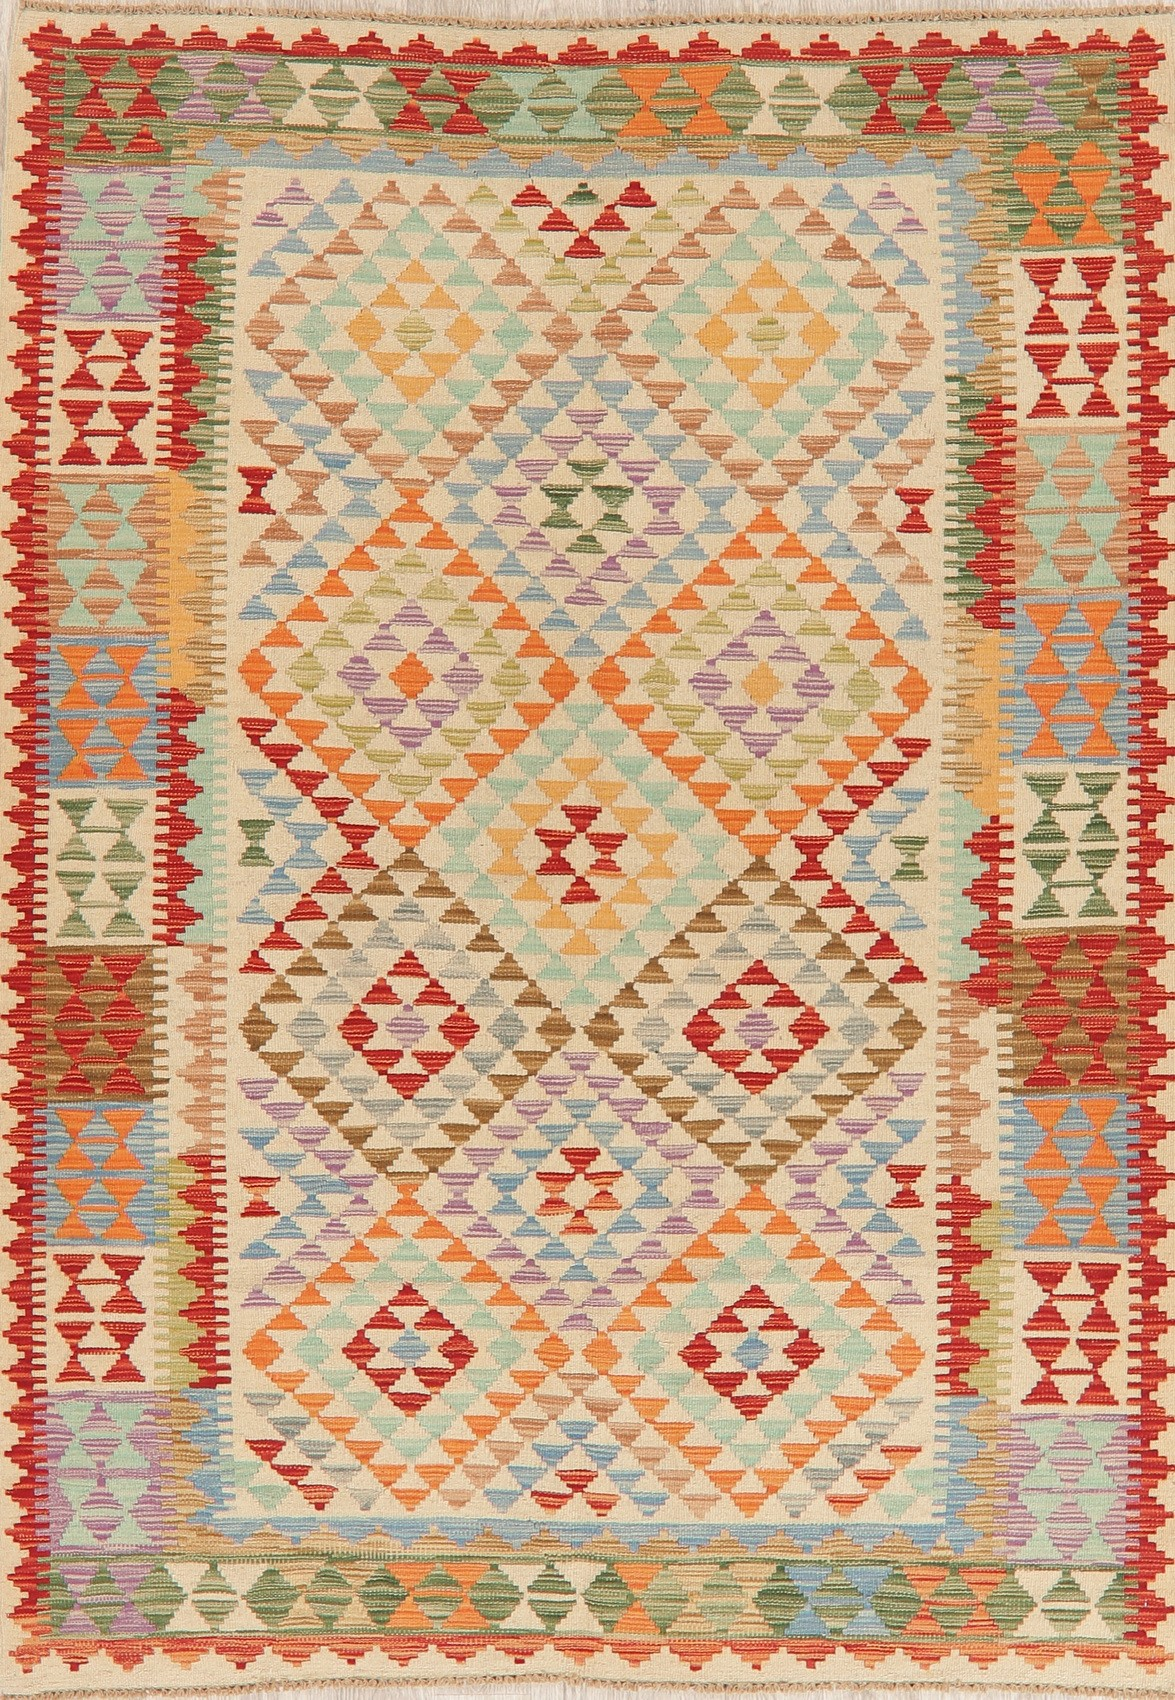 Geometric Contemporary Turkish Kilim Area Rug Hand Woven